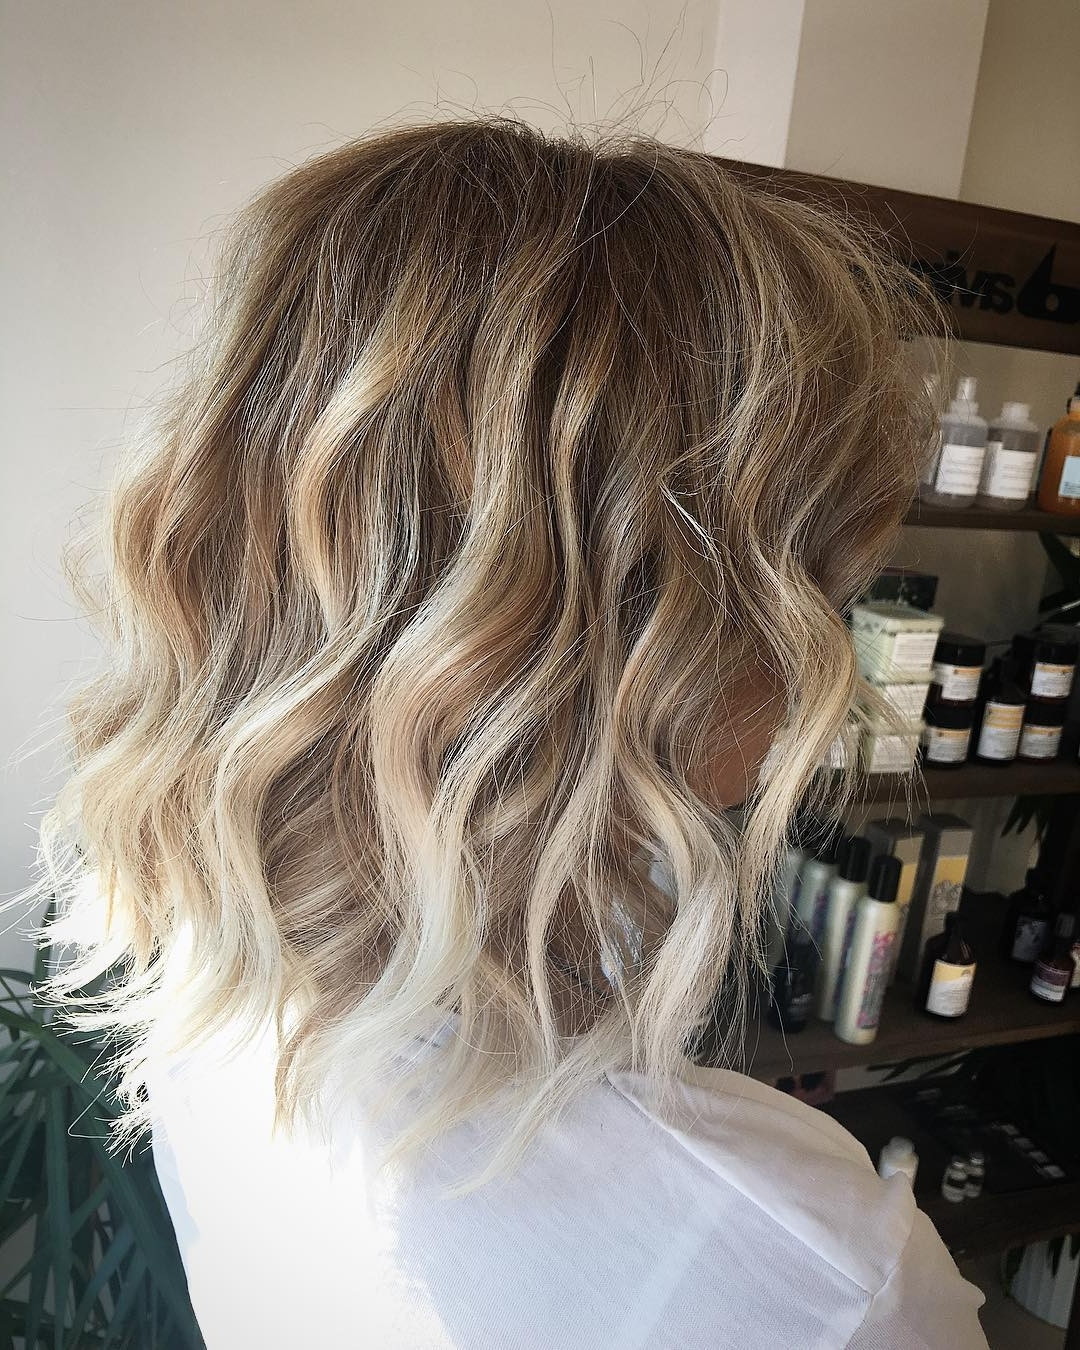 20 Beautiful Blonde Balayage Hair Color Ideas – Trendy Hair Color 2017 With Regard To Famous Icy Highlights And Loose Curls Blonde Hairstyles (View 1 of 20)